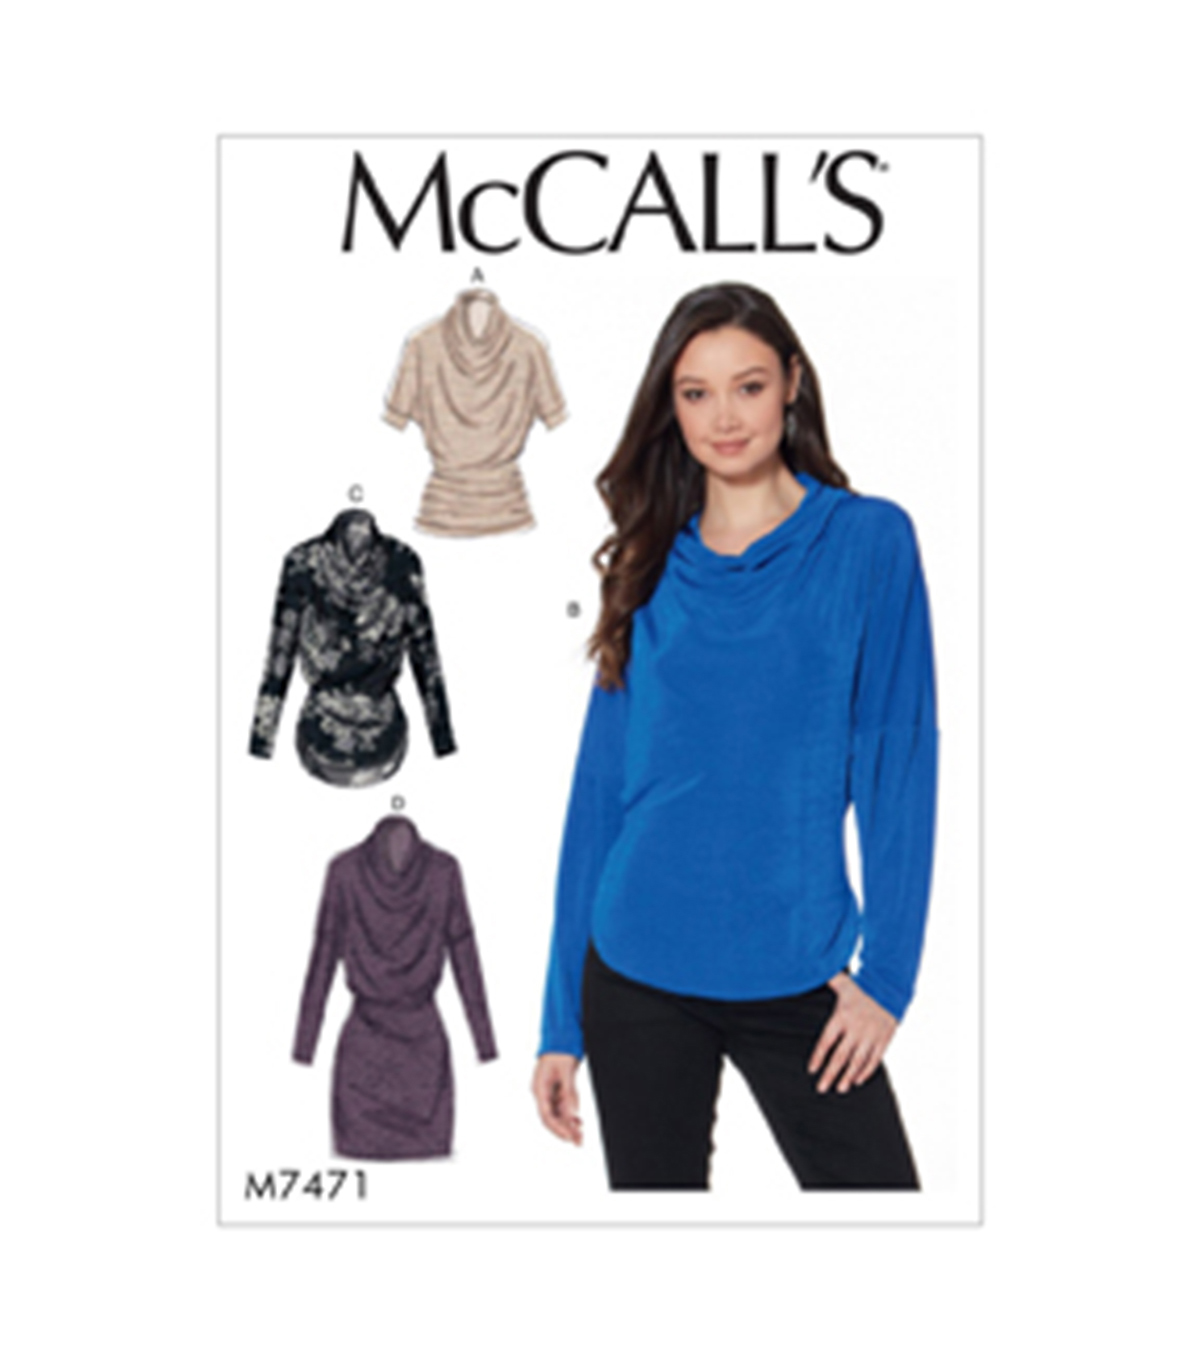 McCall\u0027s Pattern M7471 Misses\u0027 Knit Cowl-Neck Tops & Tunic-Size 6-14